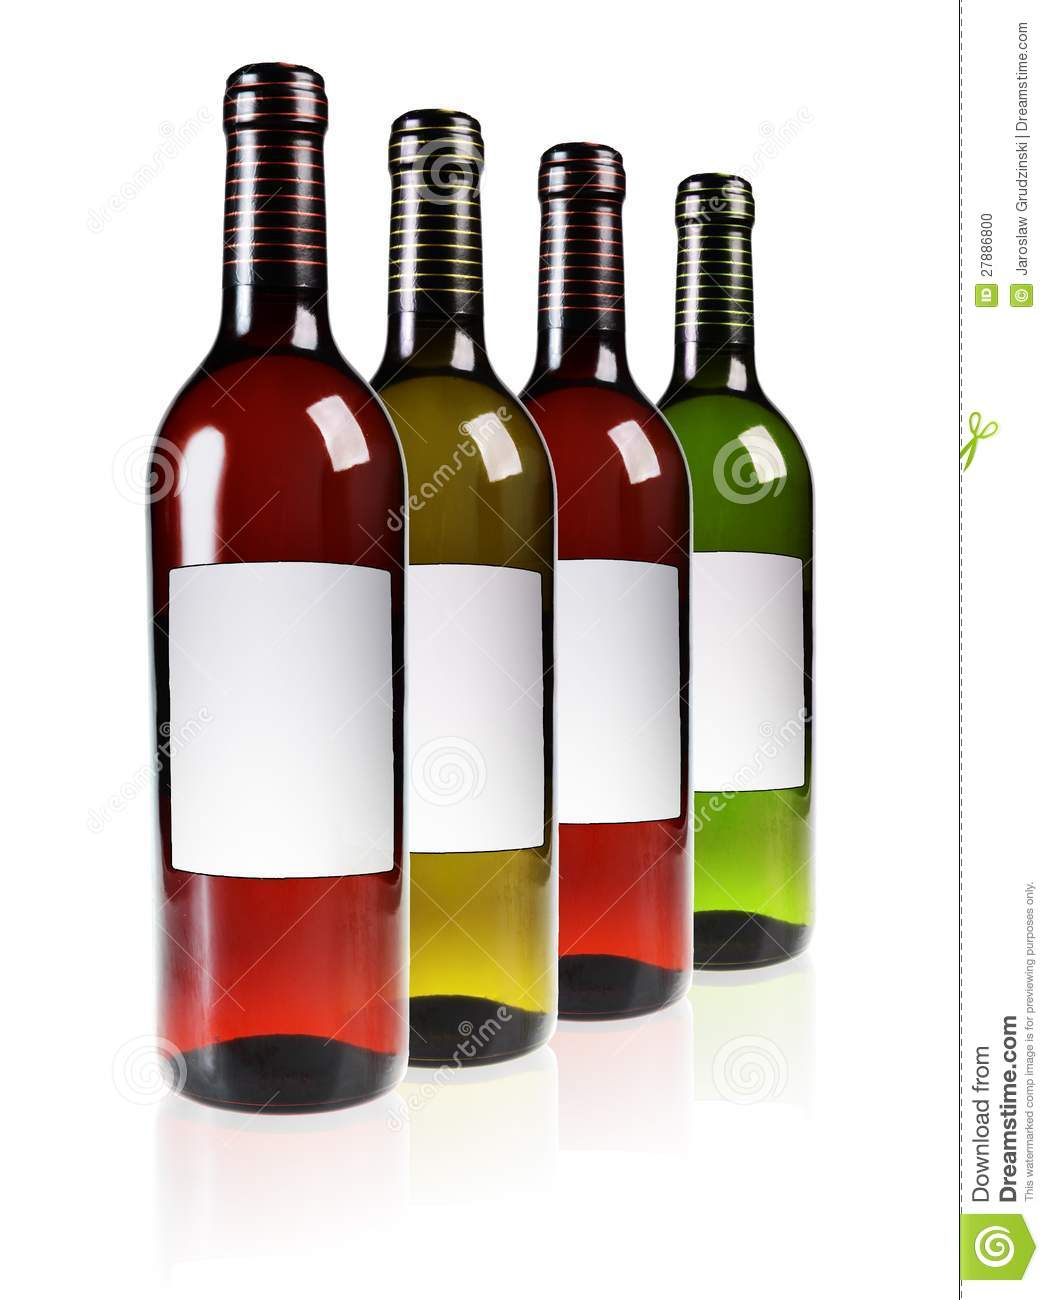 row of red and white wine bottles isolated on white background.: dreamstime.com/stock-photo-red-white-wine-image27886800